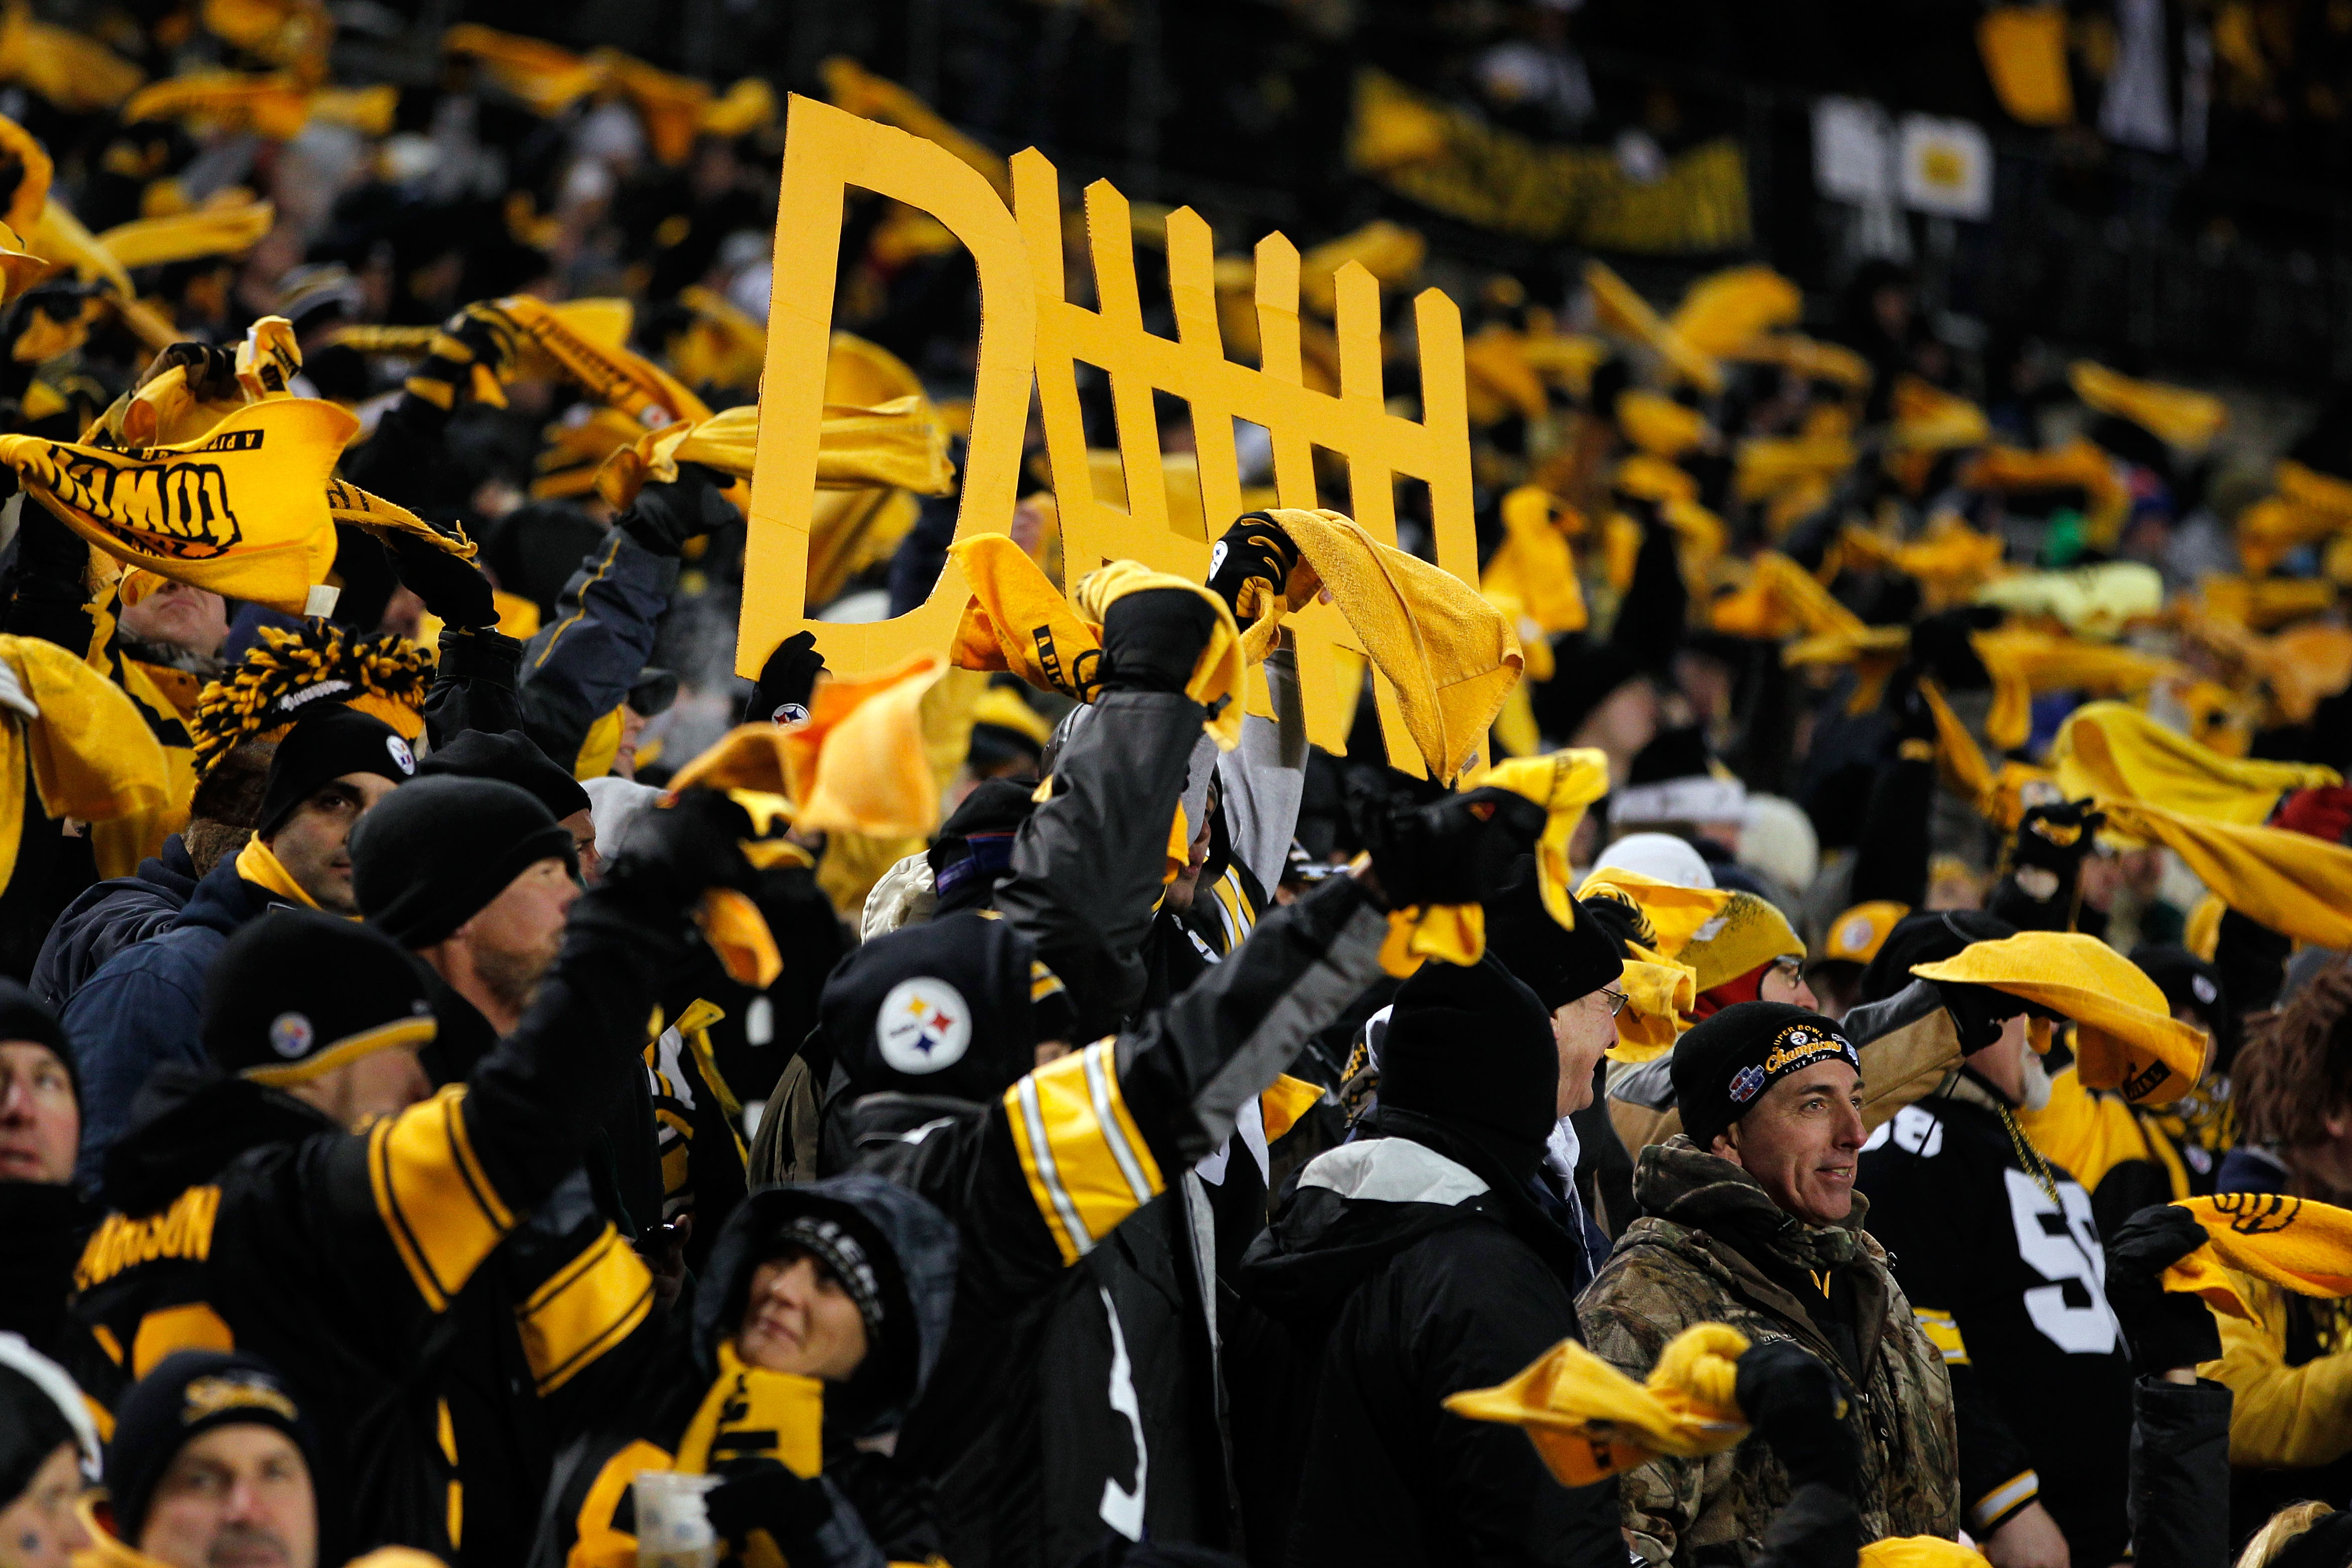 PITTSBURGH, PA - JANUARY 23:  Pittsburgh Steelers fans cheer during their 2011 AFC Championship game against the New York Jets at Heinz Field on January 23, 2011 in Pittsburgh, Pennsylvania.  (Photo by Gregory Shamus/Getty Images)